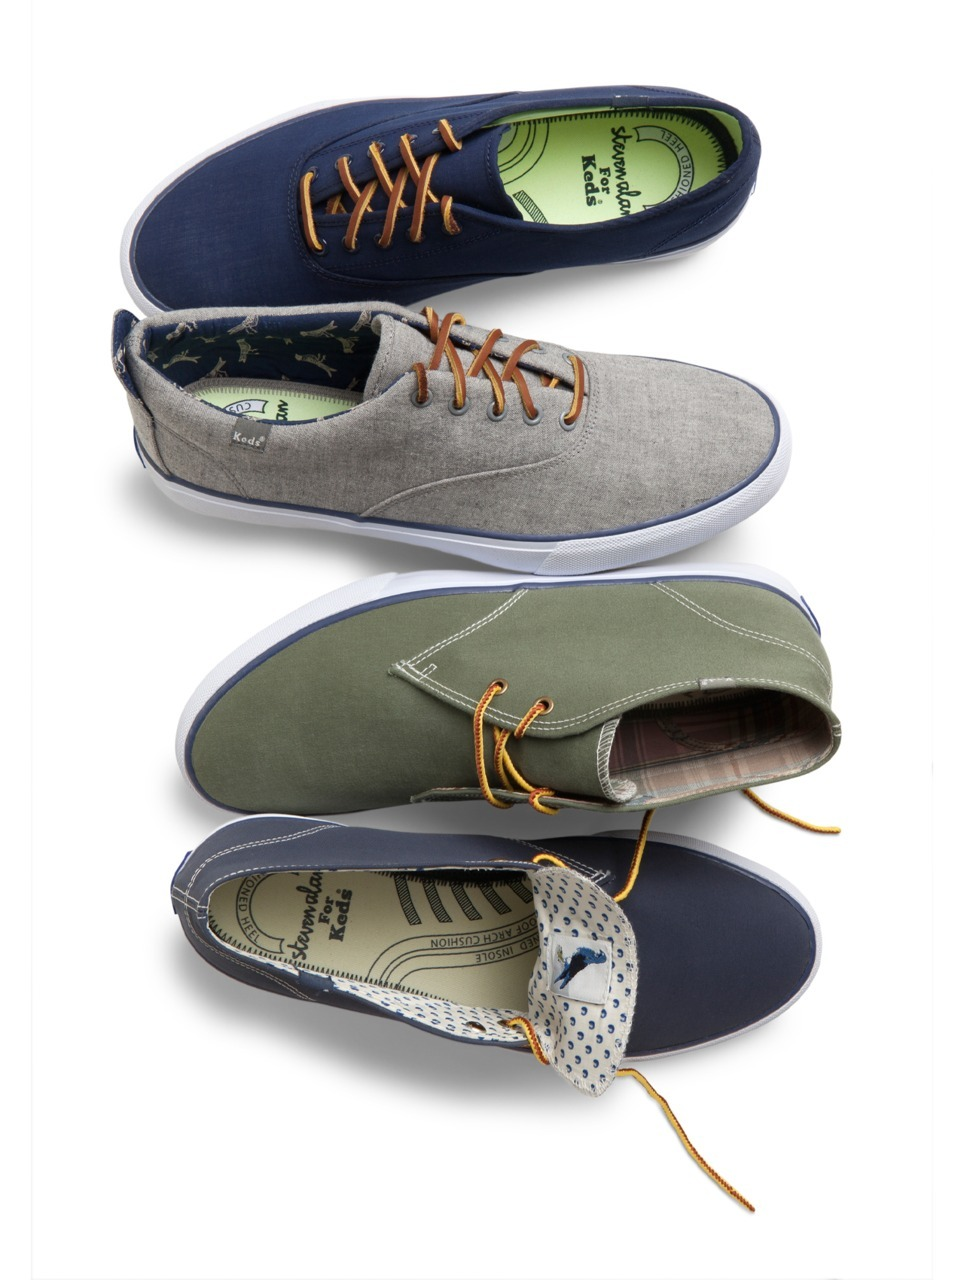 Steven Alan x Keds, pretty sweet if you ask me. I could see today's subject wearing these on a boat, Max from Where The Wild Things Are and maybe even Link from Zelda. Anyway, there all $70.00 each which ain't to shabby. Those super-fancy shoes I bought earlier this summer are toast so these would be a nice mid-summer refresh.